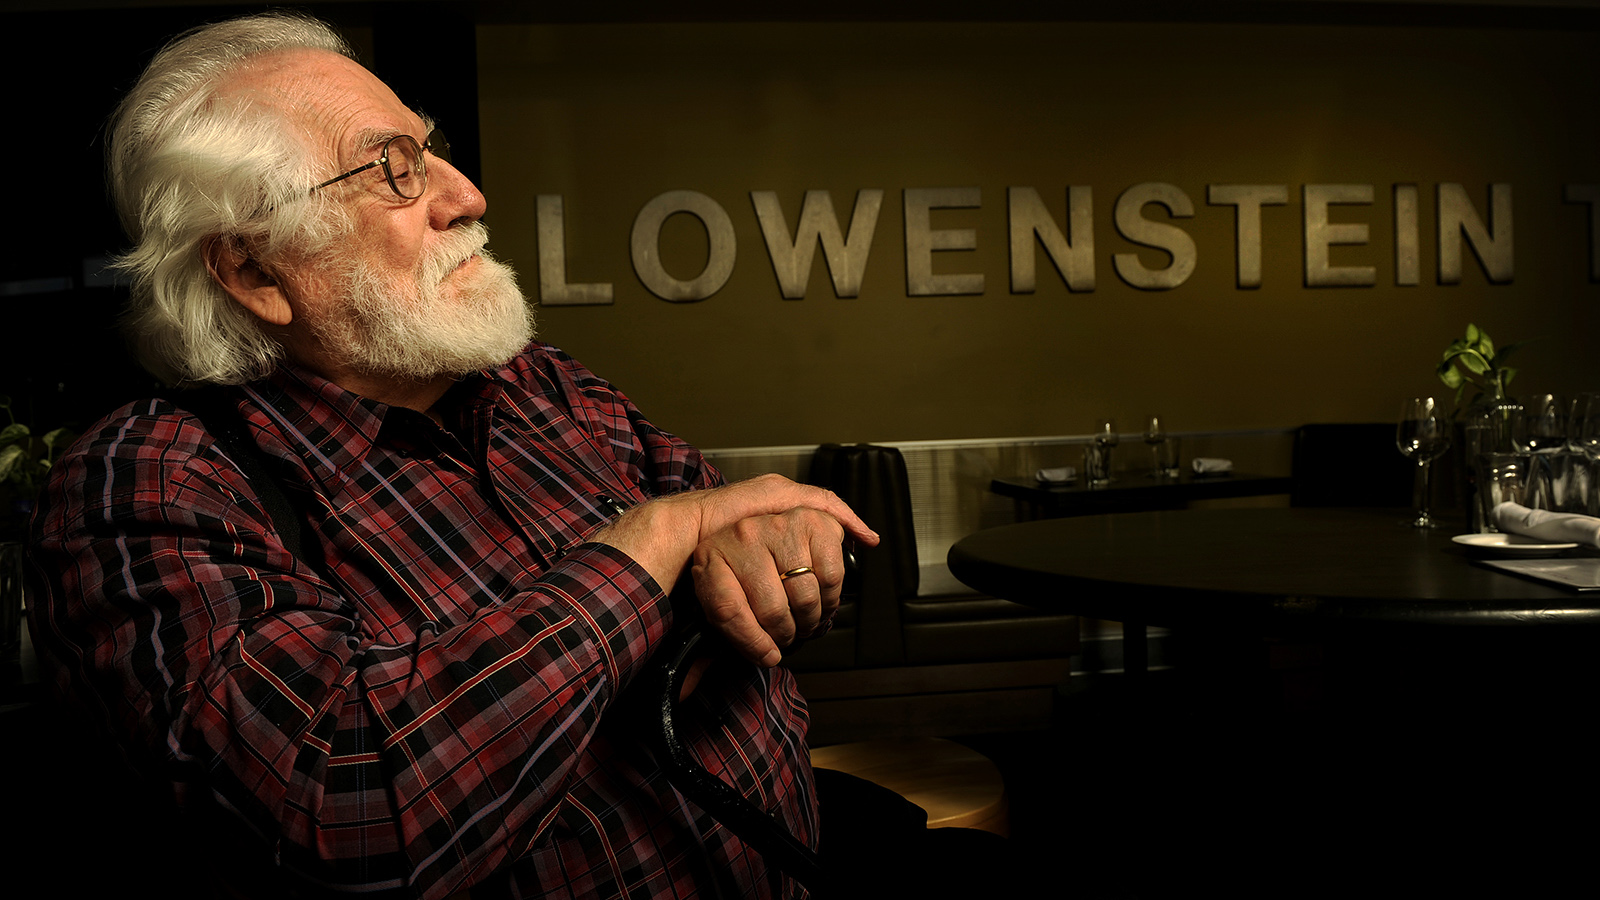 <p>Colorado theater veteran Henry Lowenstein in June 2009.</p>